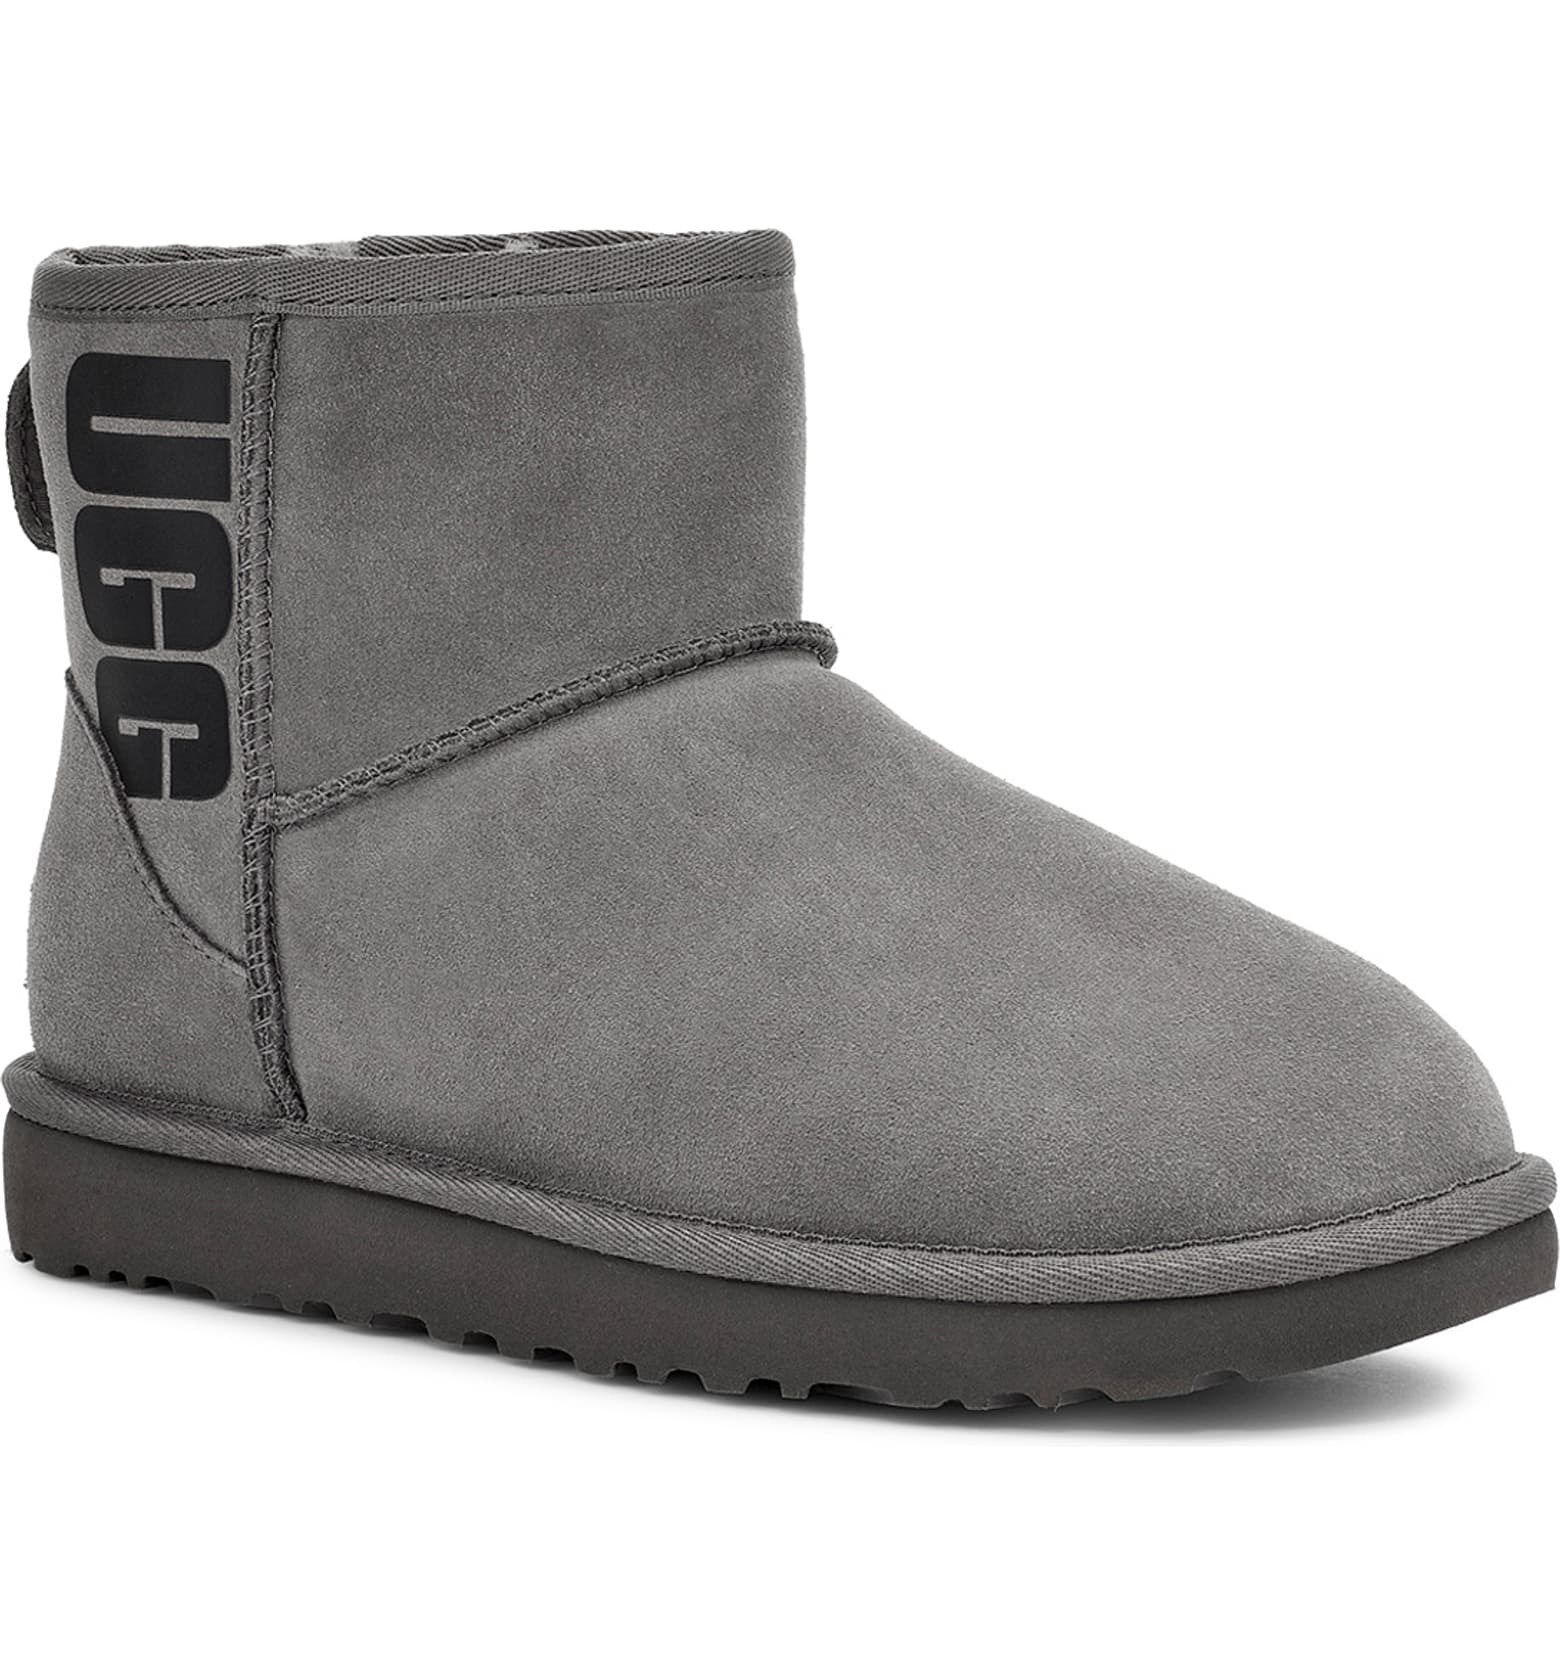 Newly designed cozy fall Ugg boots are perfect for cozying up on a crisp autumn day.